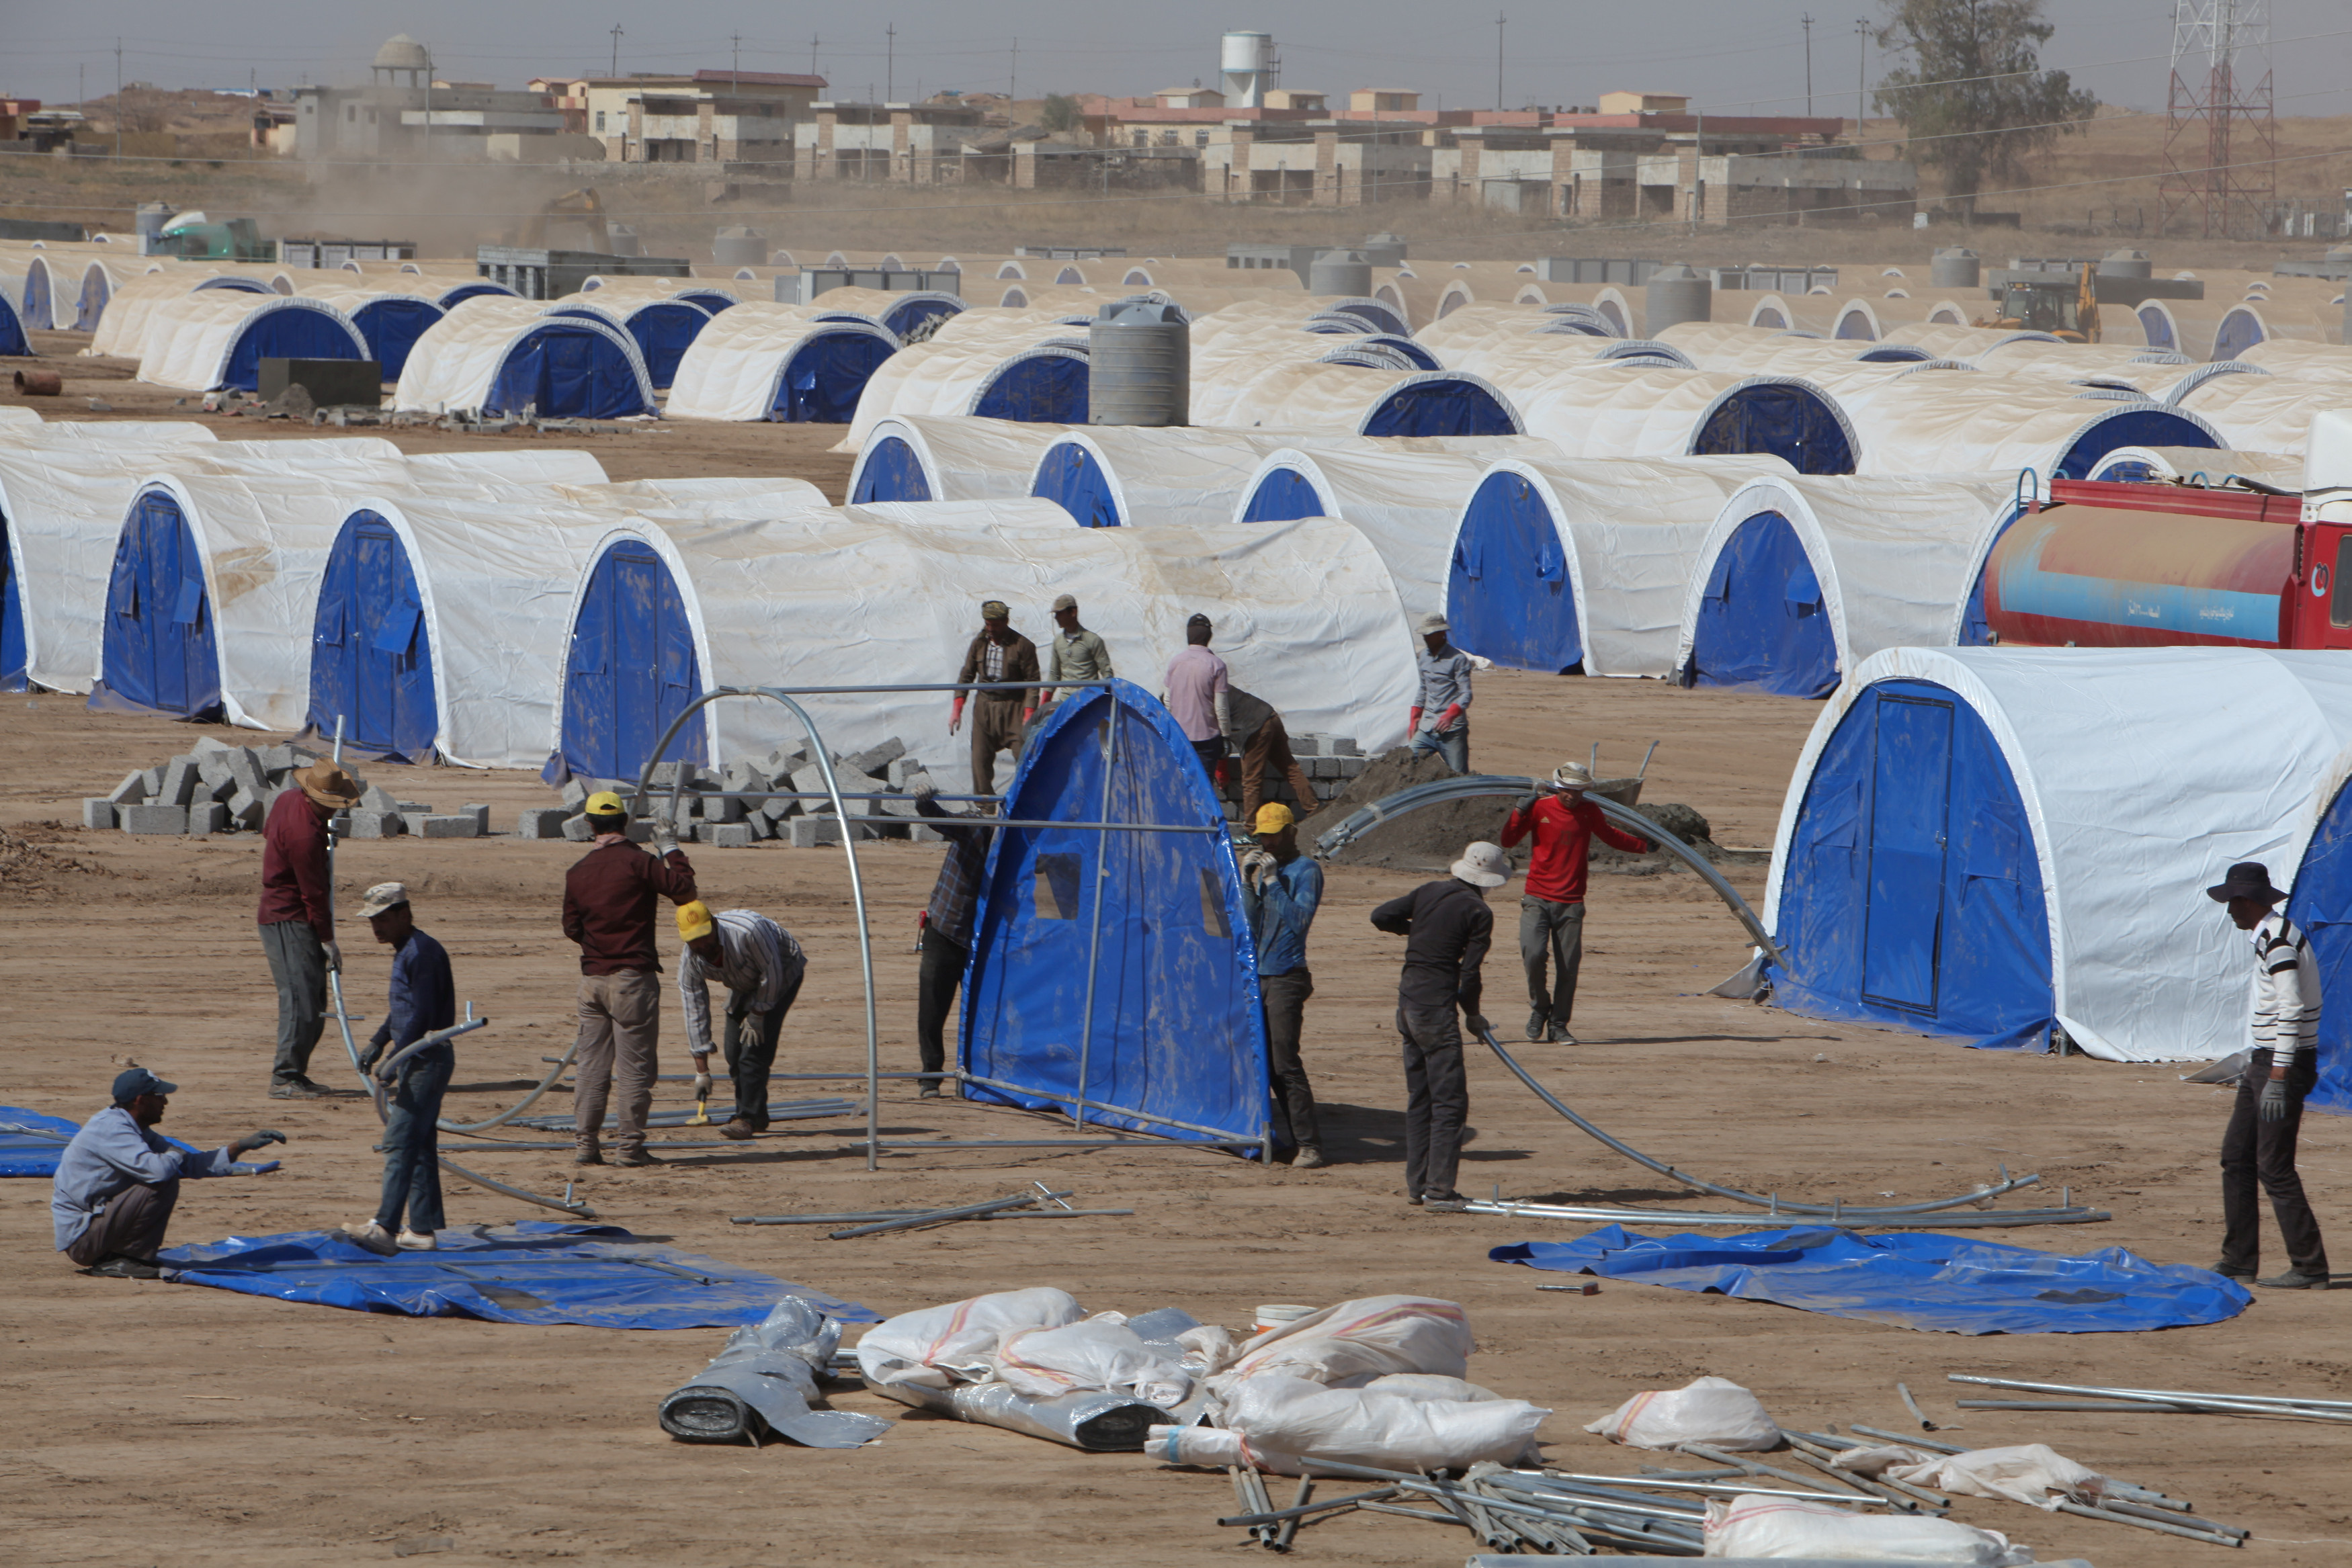 Workers prepare a tent camp in Khazer, west of the Kurdish regional capital Erbil in Iraq, for people fleeing the fighting in Mosul. Photo by Azad Lashkari/Reuters